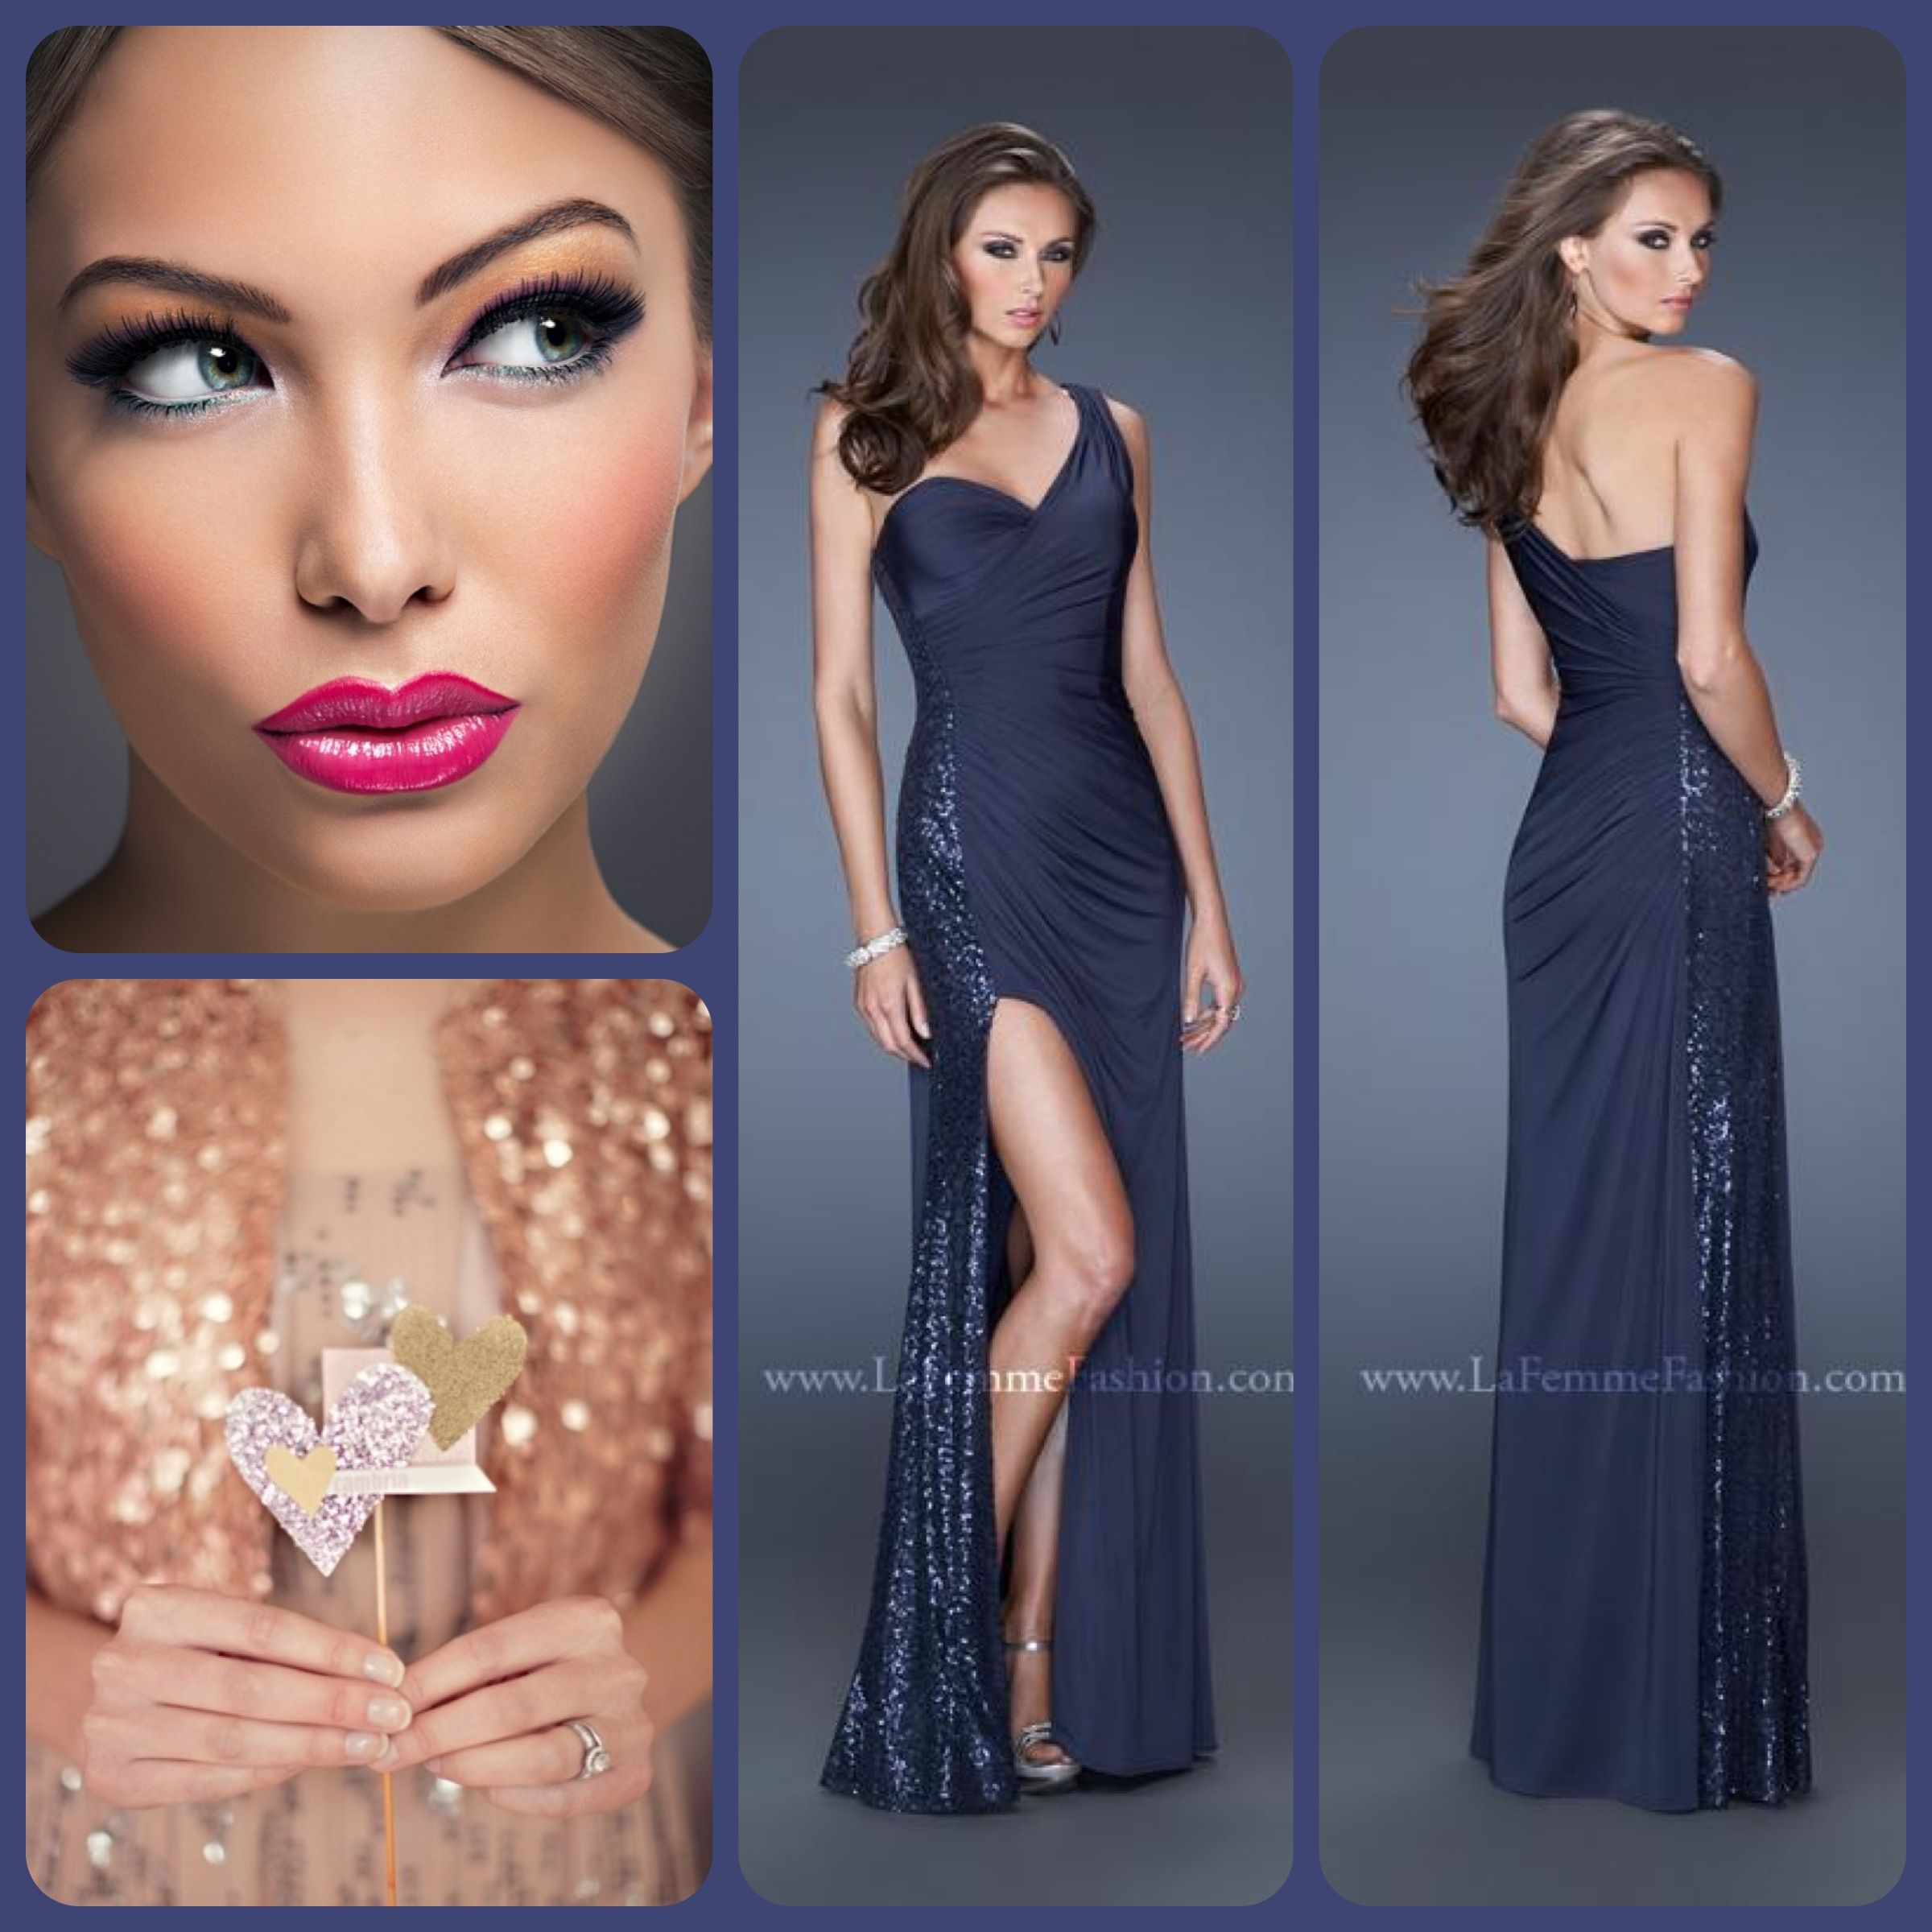 Prom Makeup For Navy Blue Dress - Gown And Dress Gallery